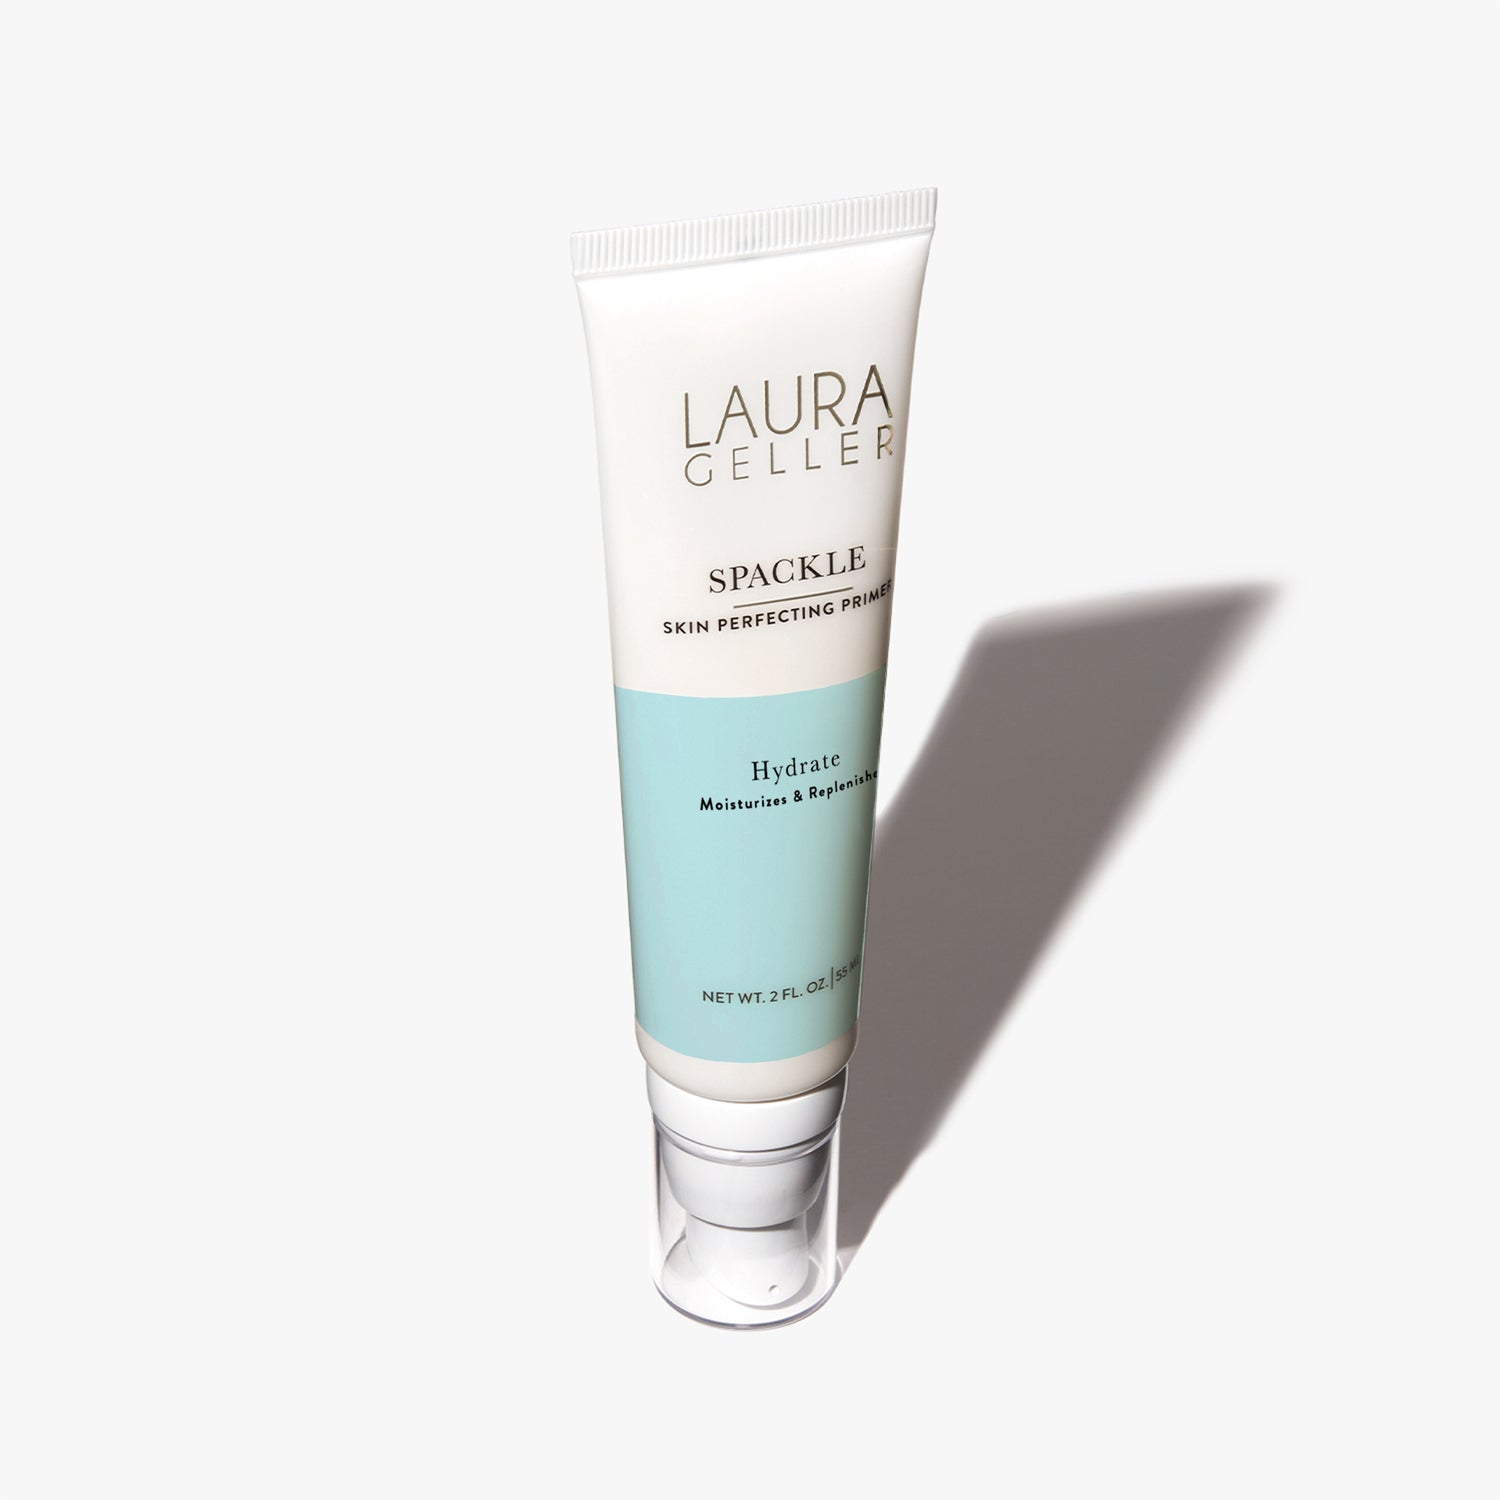 Spackle Skin Perfecting Primer, Hydrate Moisturizes + Replenishes